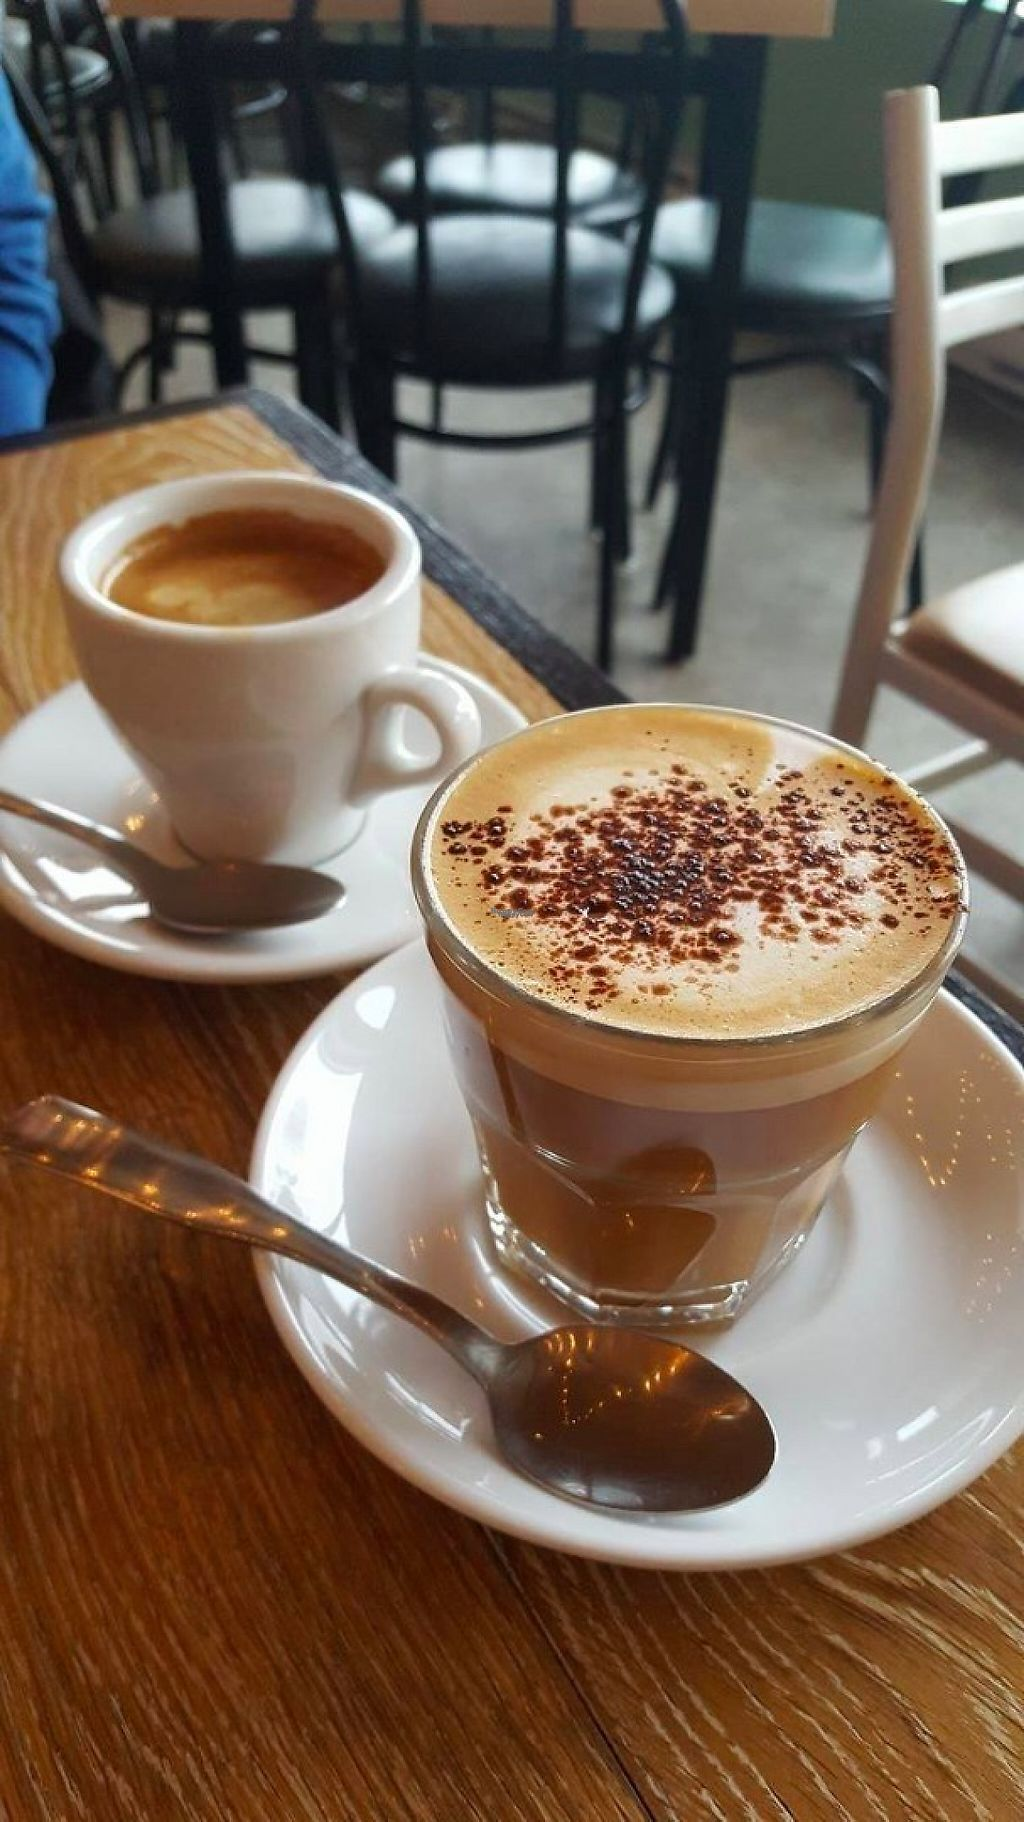 "Photo of Cafe Dei Campi  by <a href=""/members/profile/MrsPennyapple"">MrsPennyapple</a> <br/>Cafe latte and americano  <br/> December 29, 2016  - <a href='/contact/abuse/image/67269/205975'>Report</a>"